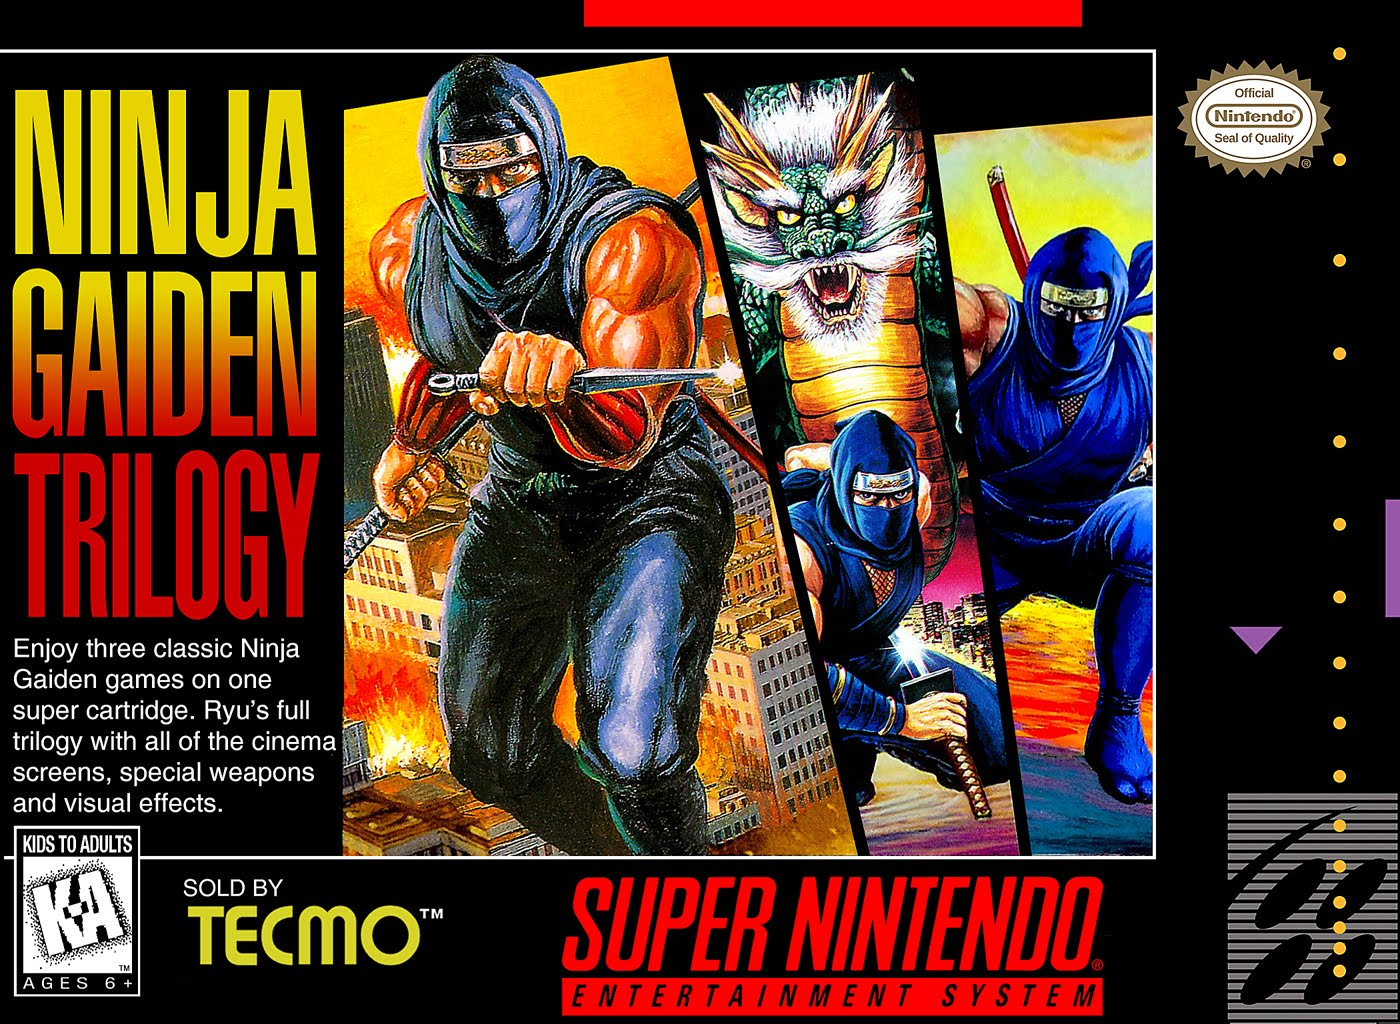 Ninja Gaiden Trilogy Video Game 1995 Imdb